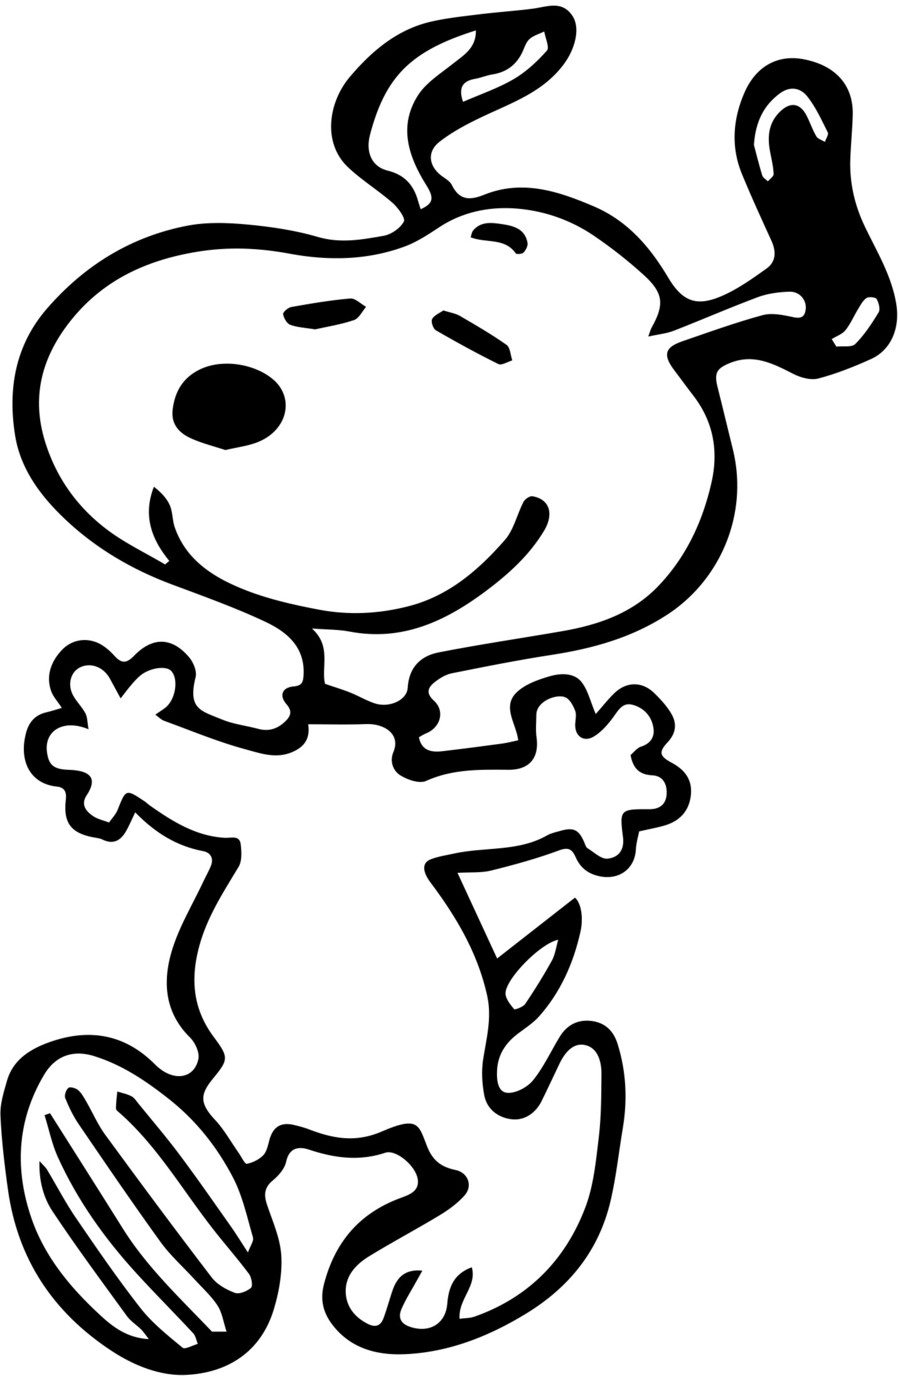 Download snoopy coloring pages clipart Snoopy Woodstock Charlie ...